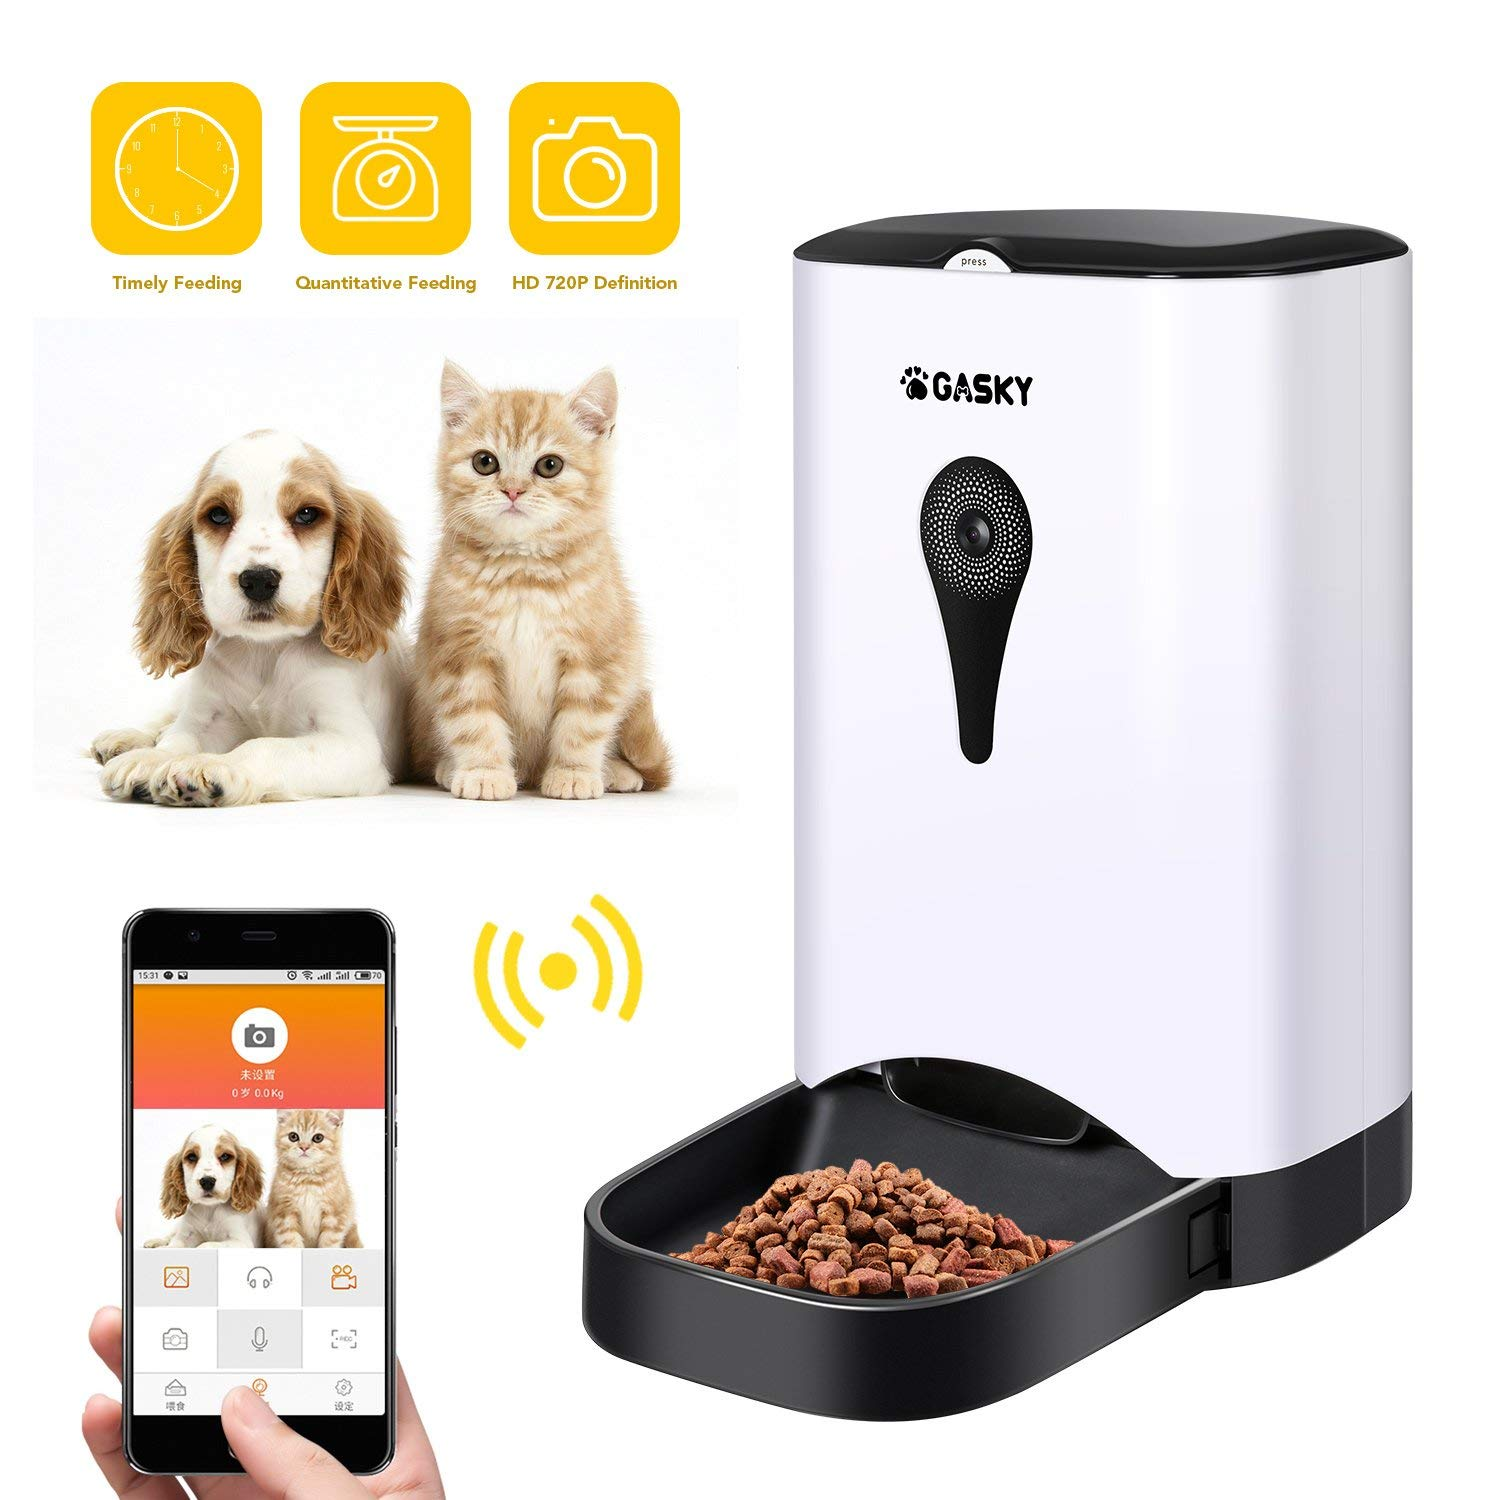 [Limited Promotion]Automatic Cat Dog Pet Smart Feeder - App Control Pet Food Dispenser with WiFi Camera Video 4.5L Large Capacity Distribution Alarms Portion Control Voice Recording Timer Programmable by Gasky